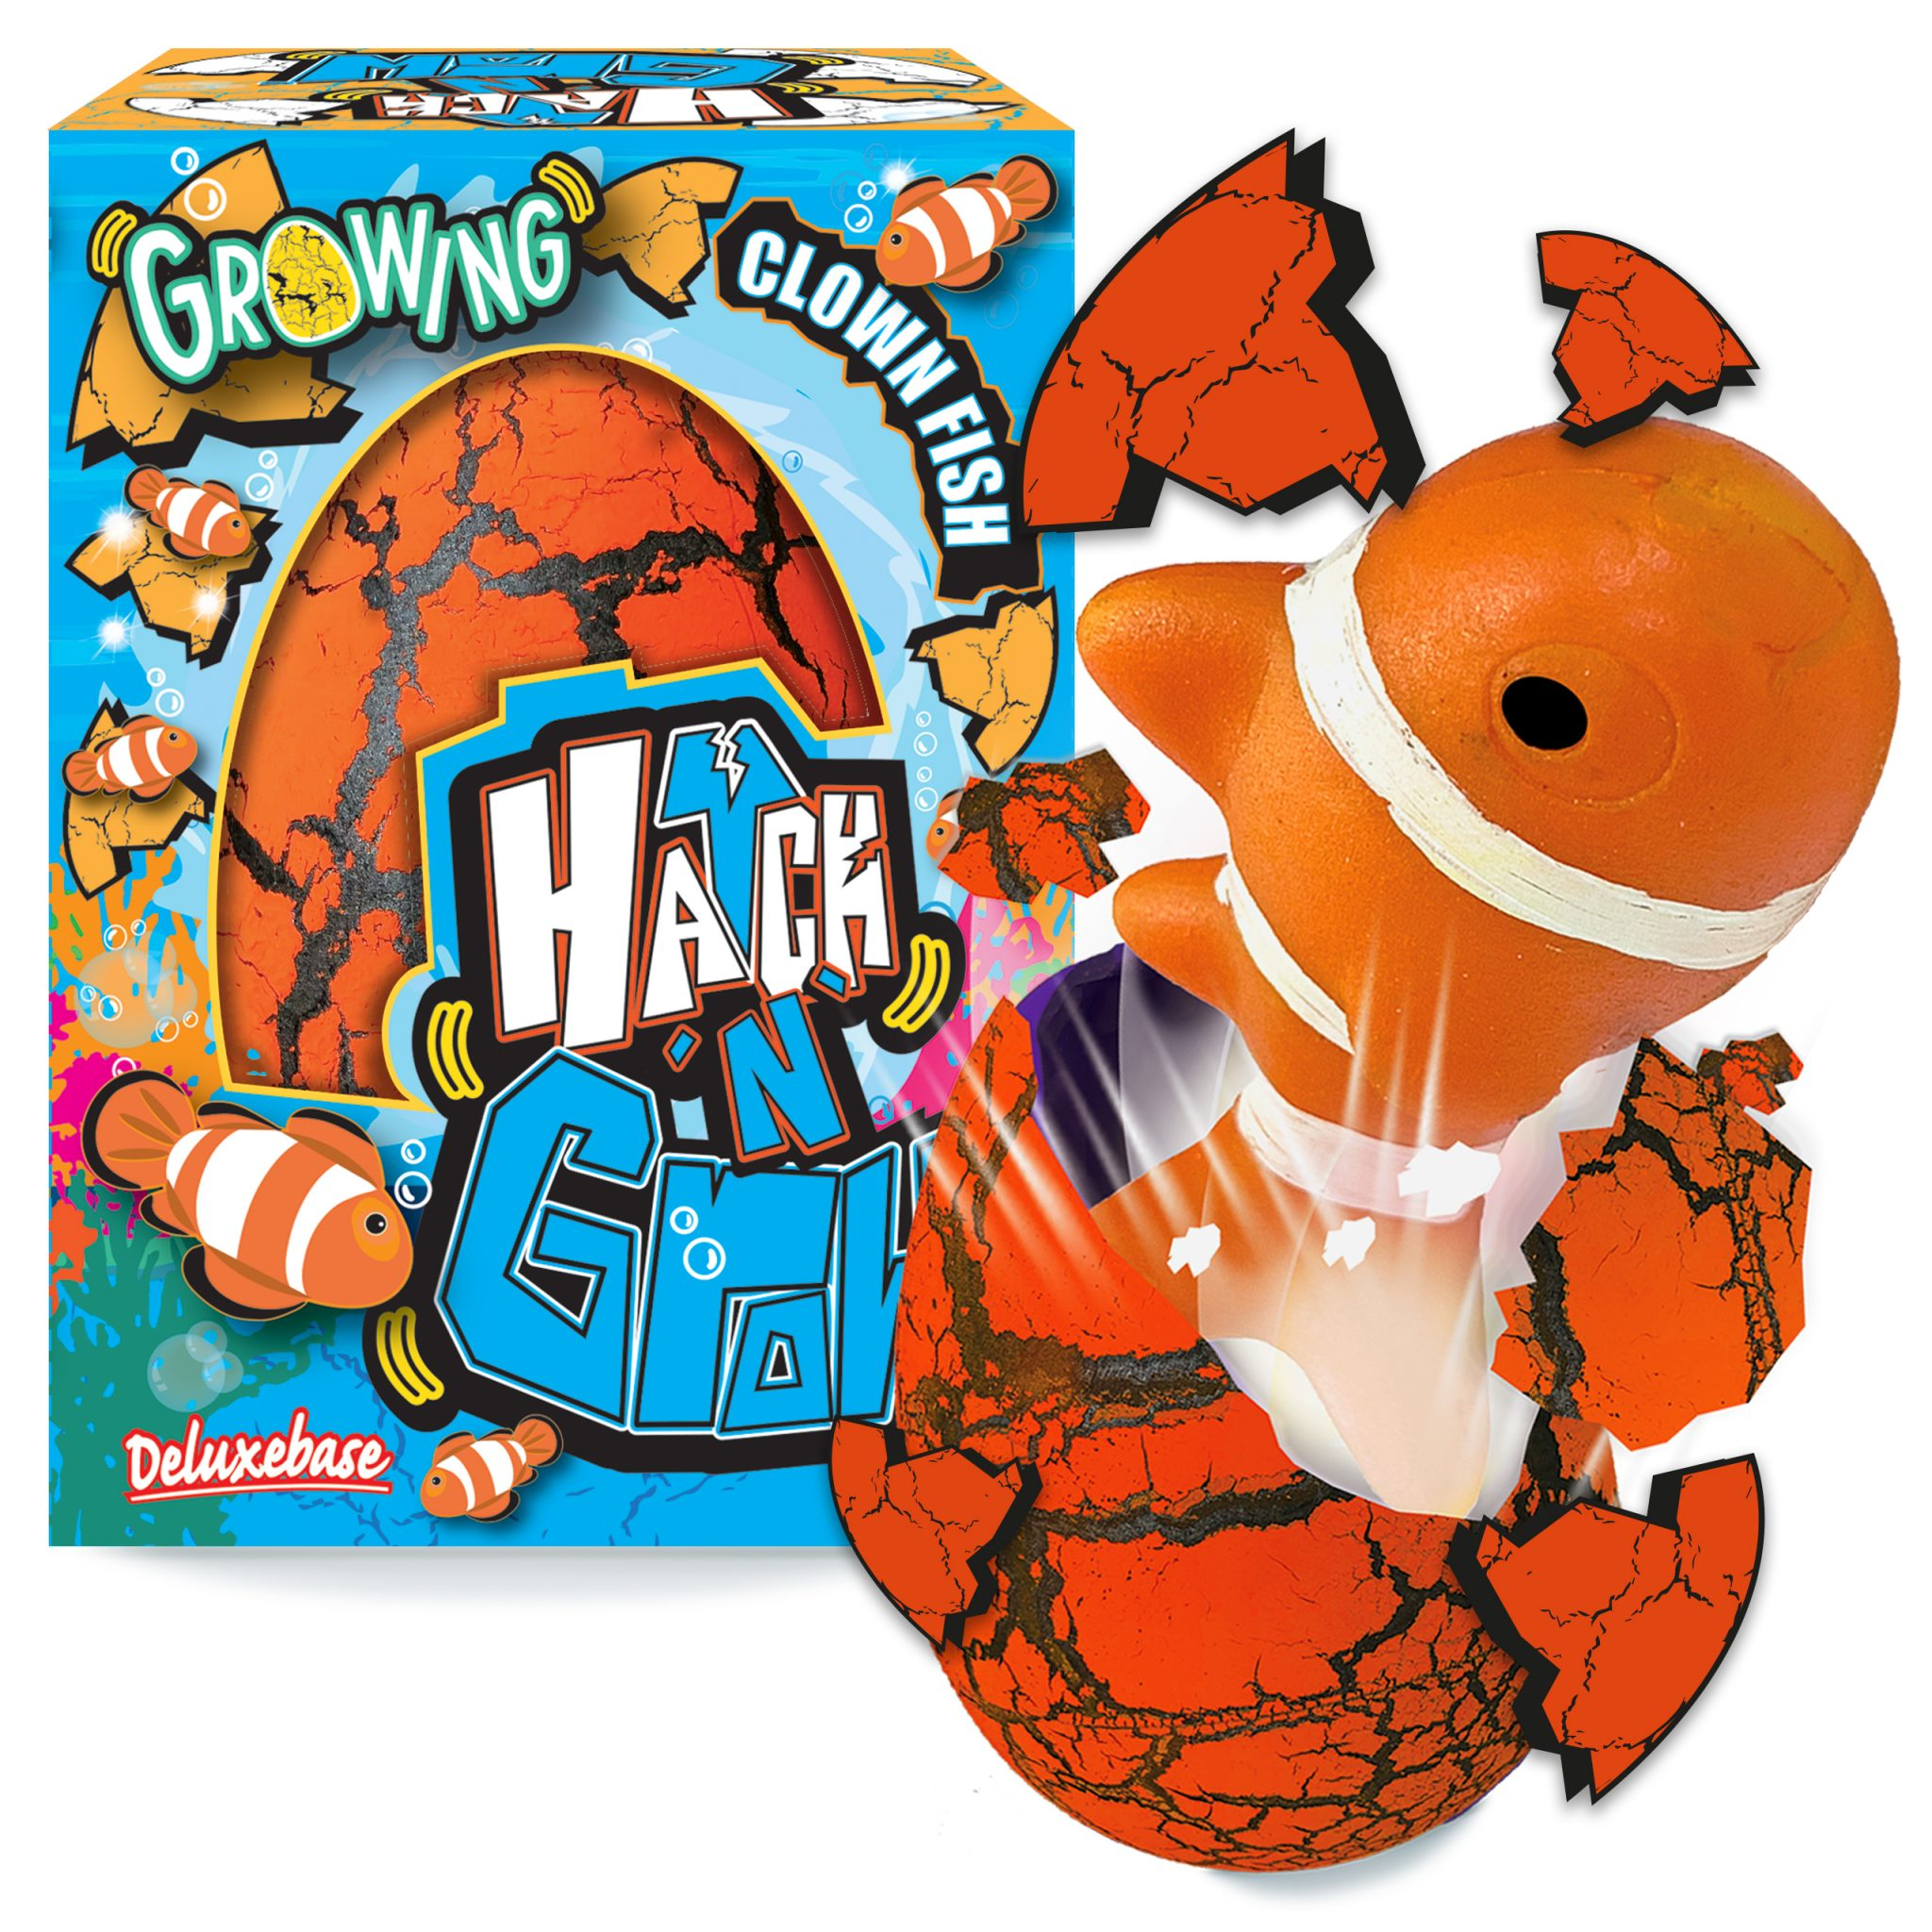 Ou figurina cu surpriza, Hatch'n Grow, Clown fish